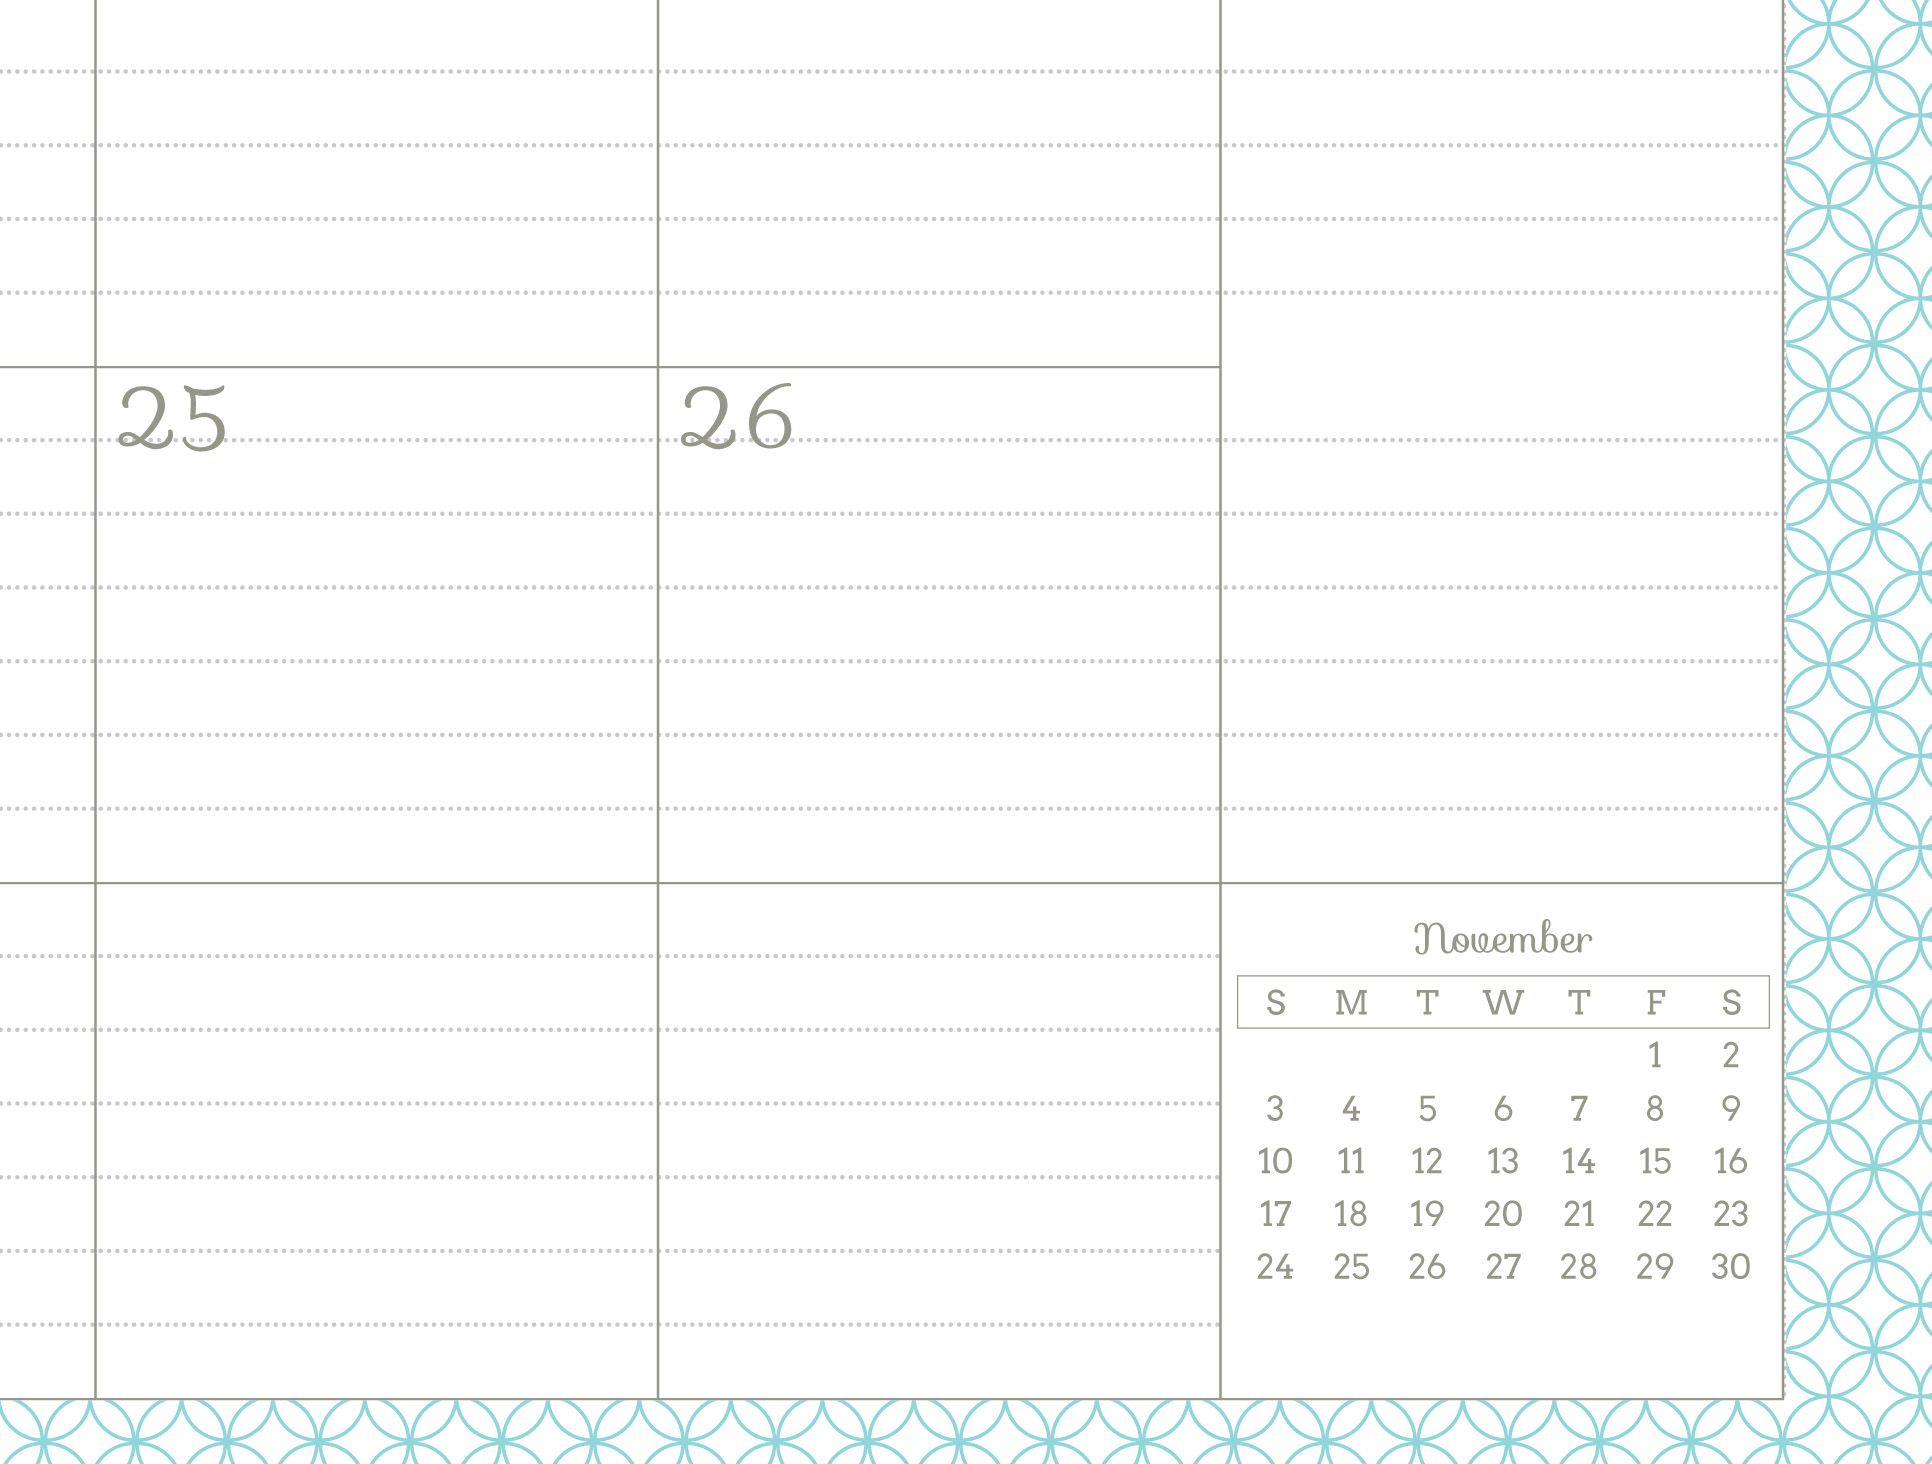 Monthly Planner Template 2014 Amazing printable planner!